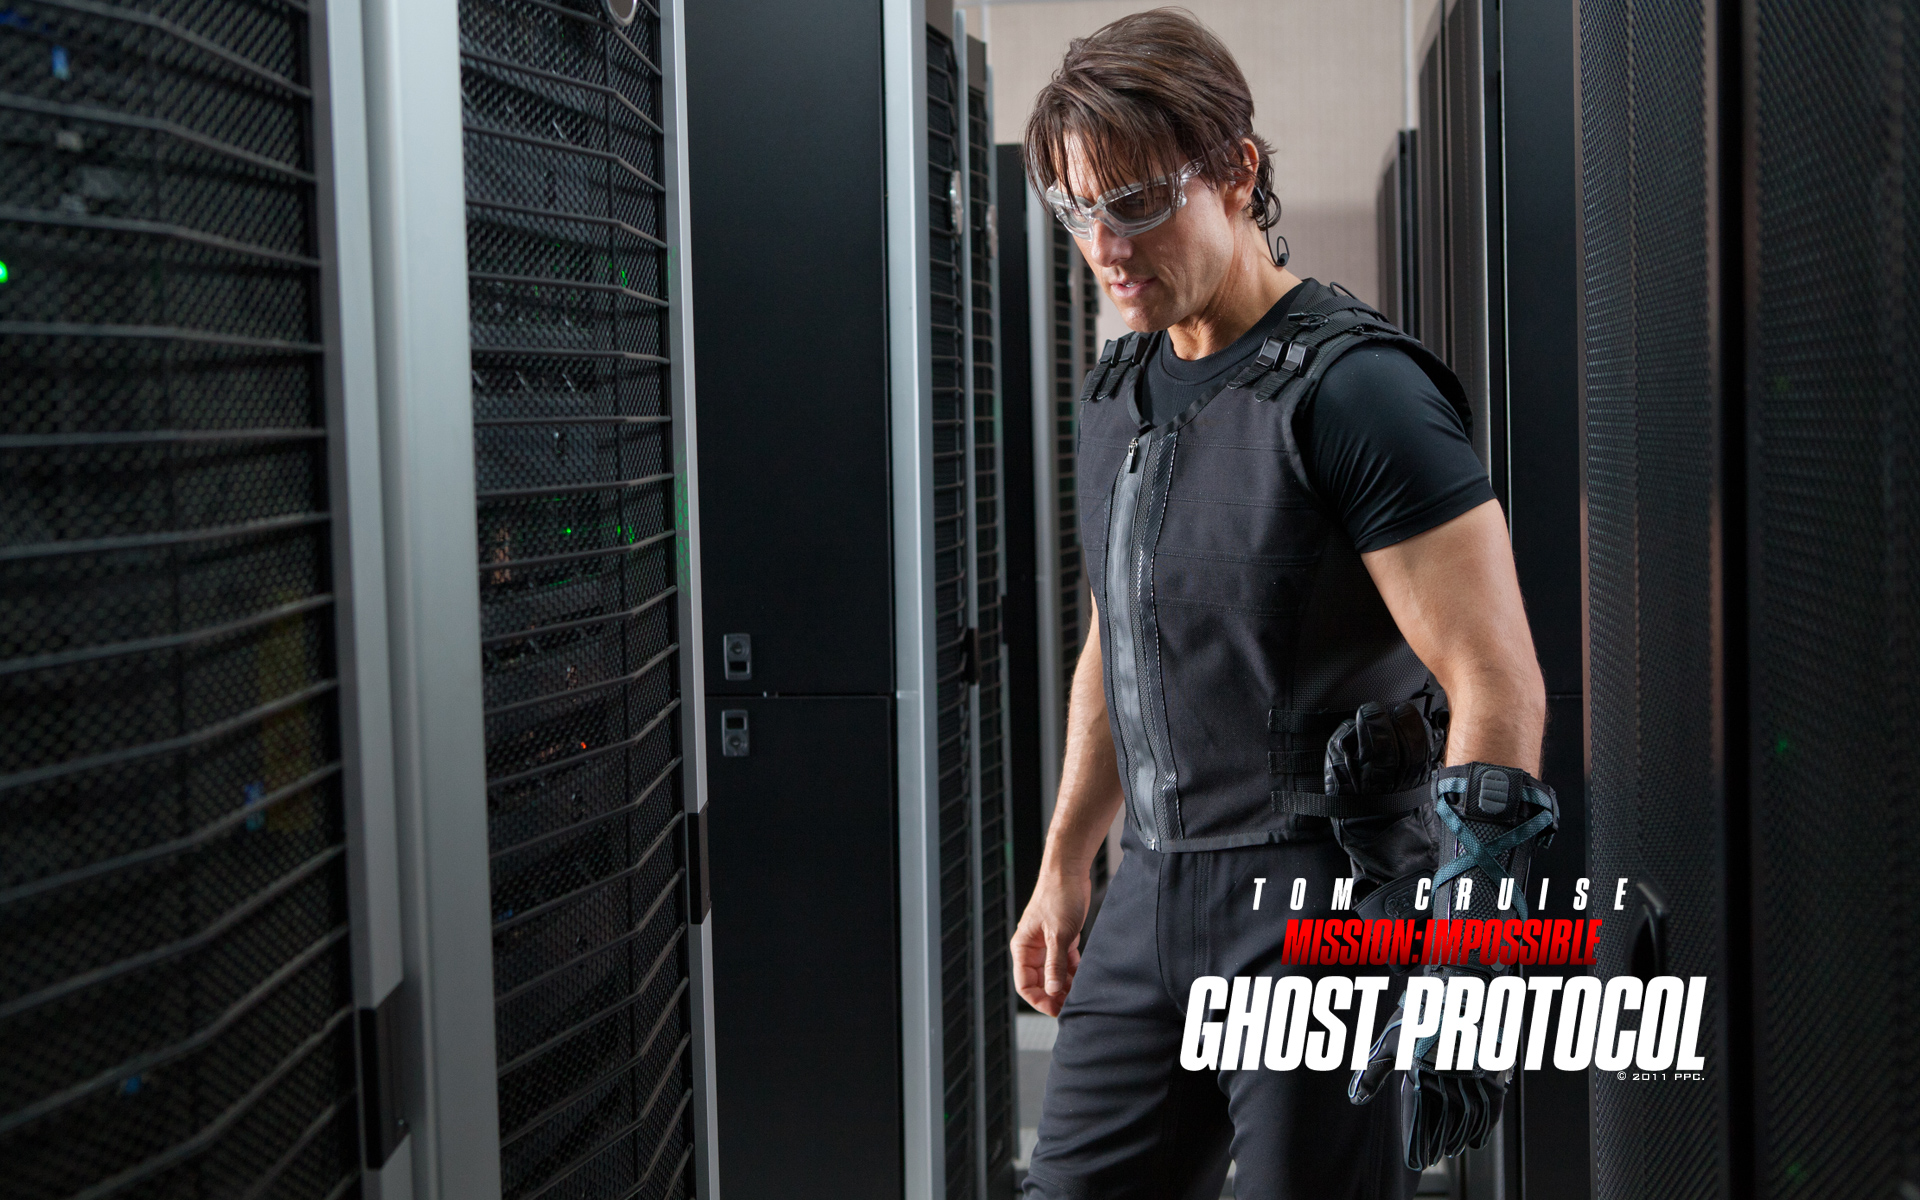 Mission impossible ghost protocol wallpapers 1920x1200 - Mission impossible wallpaper ...